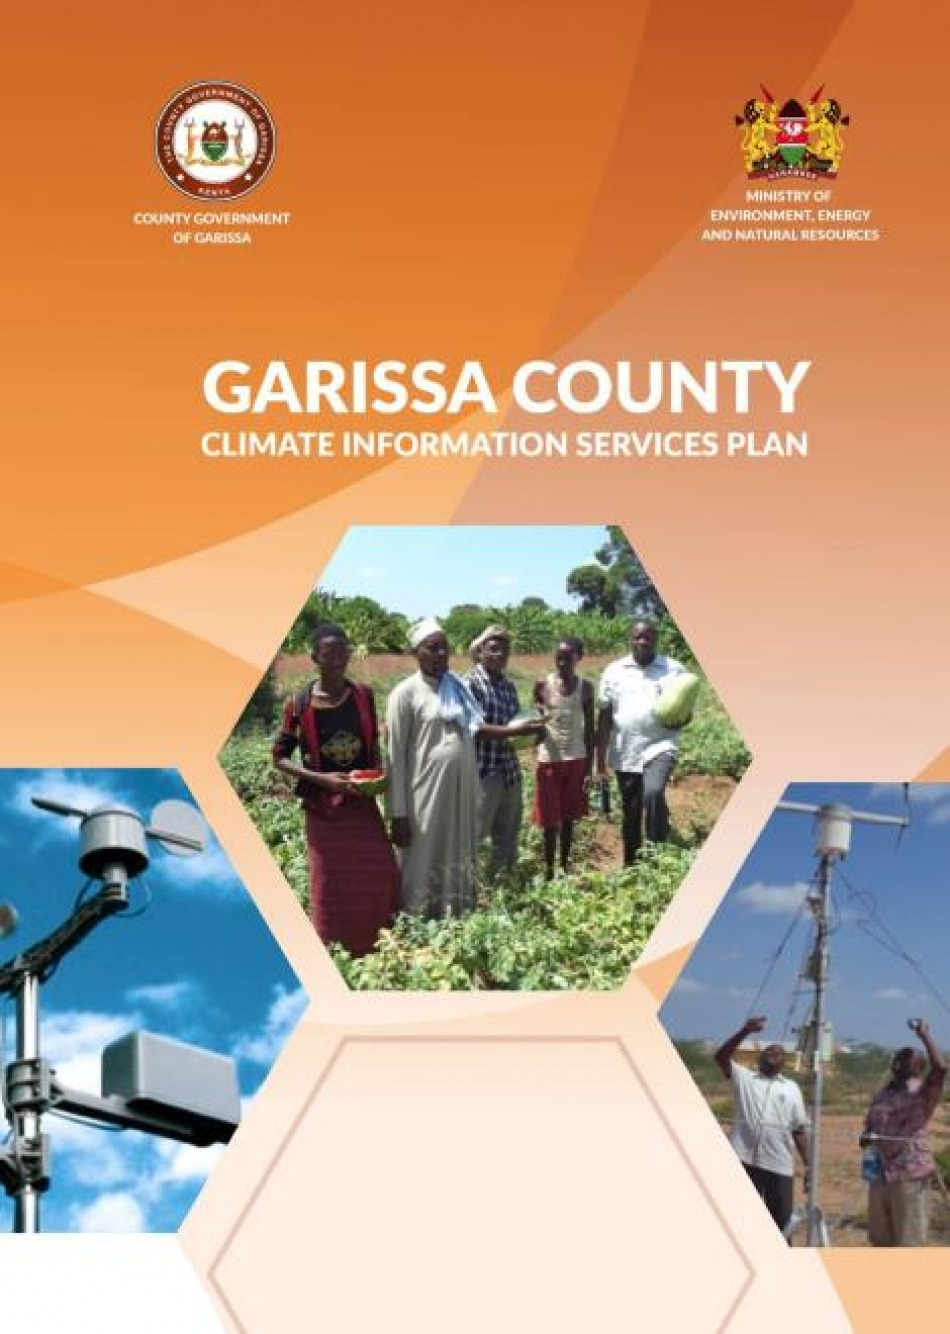 Garissa County Climate Information Service Plan